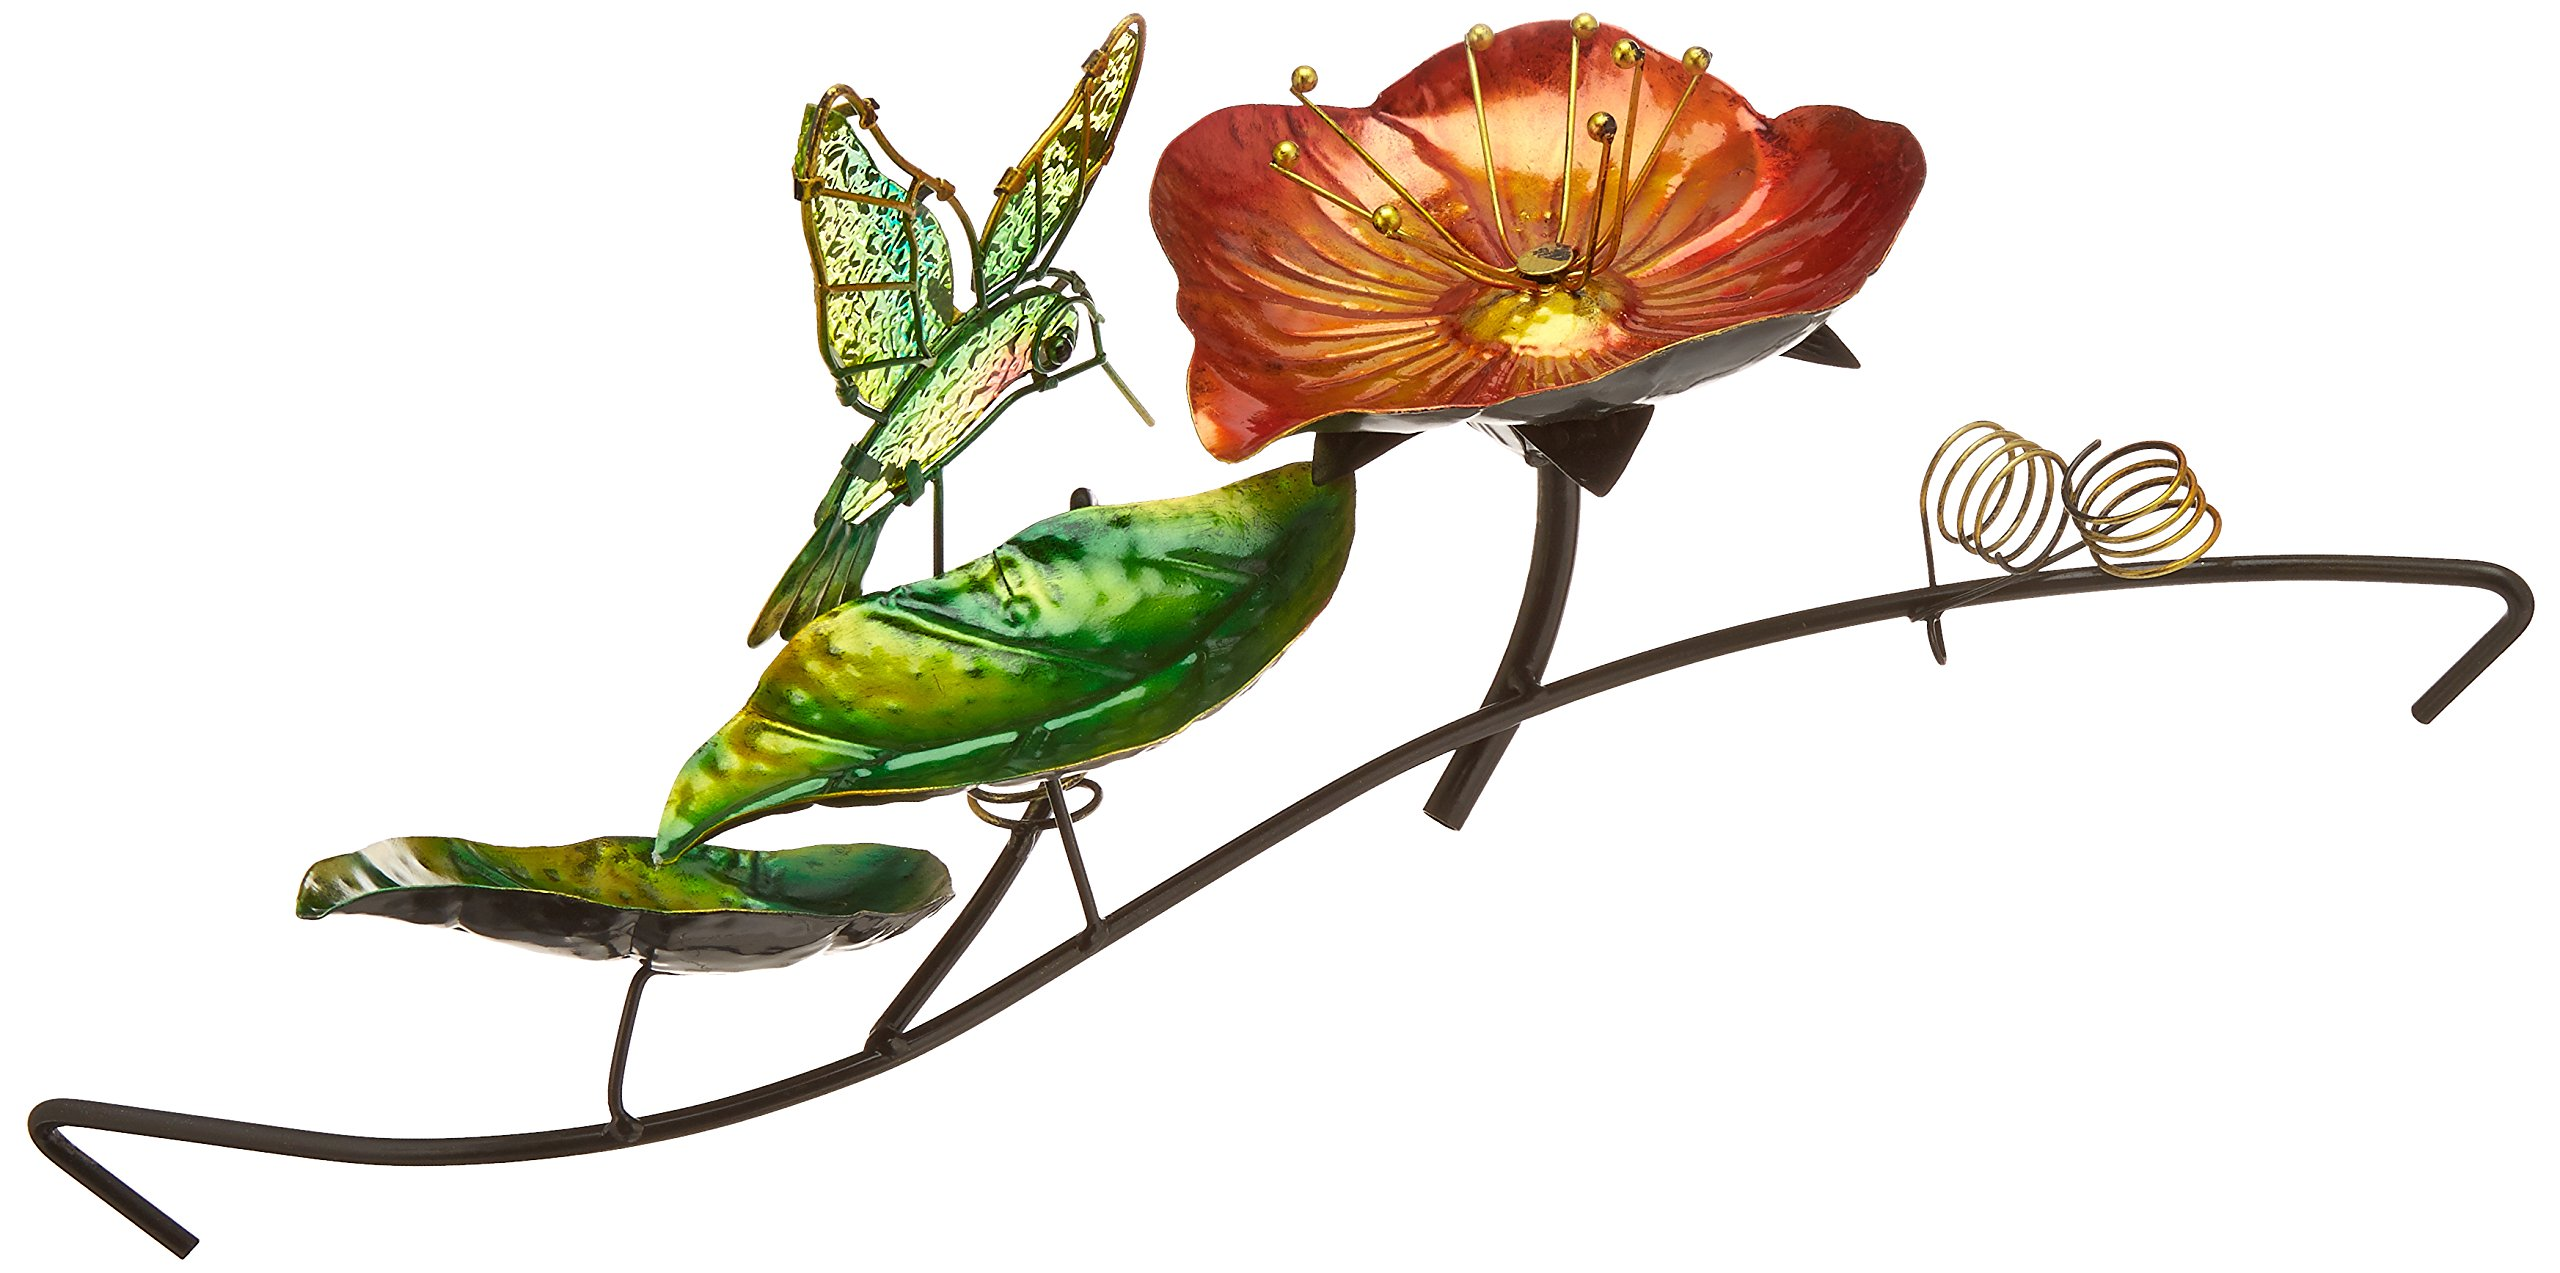 Continental Art Center CAC40079 16.93 by 9.45 by 5.51-Inch Hummingbird Fountain with Plug-In Pump for 18-Inch Glass Bird Bath